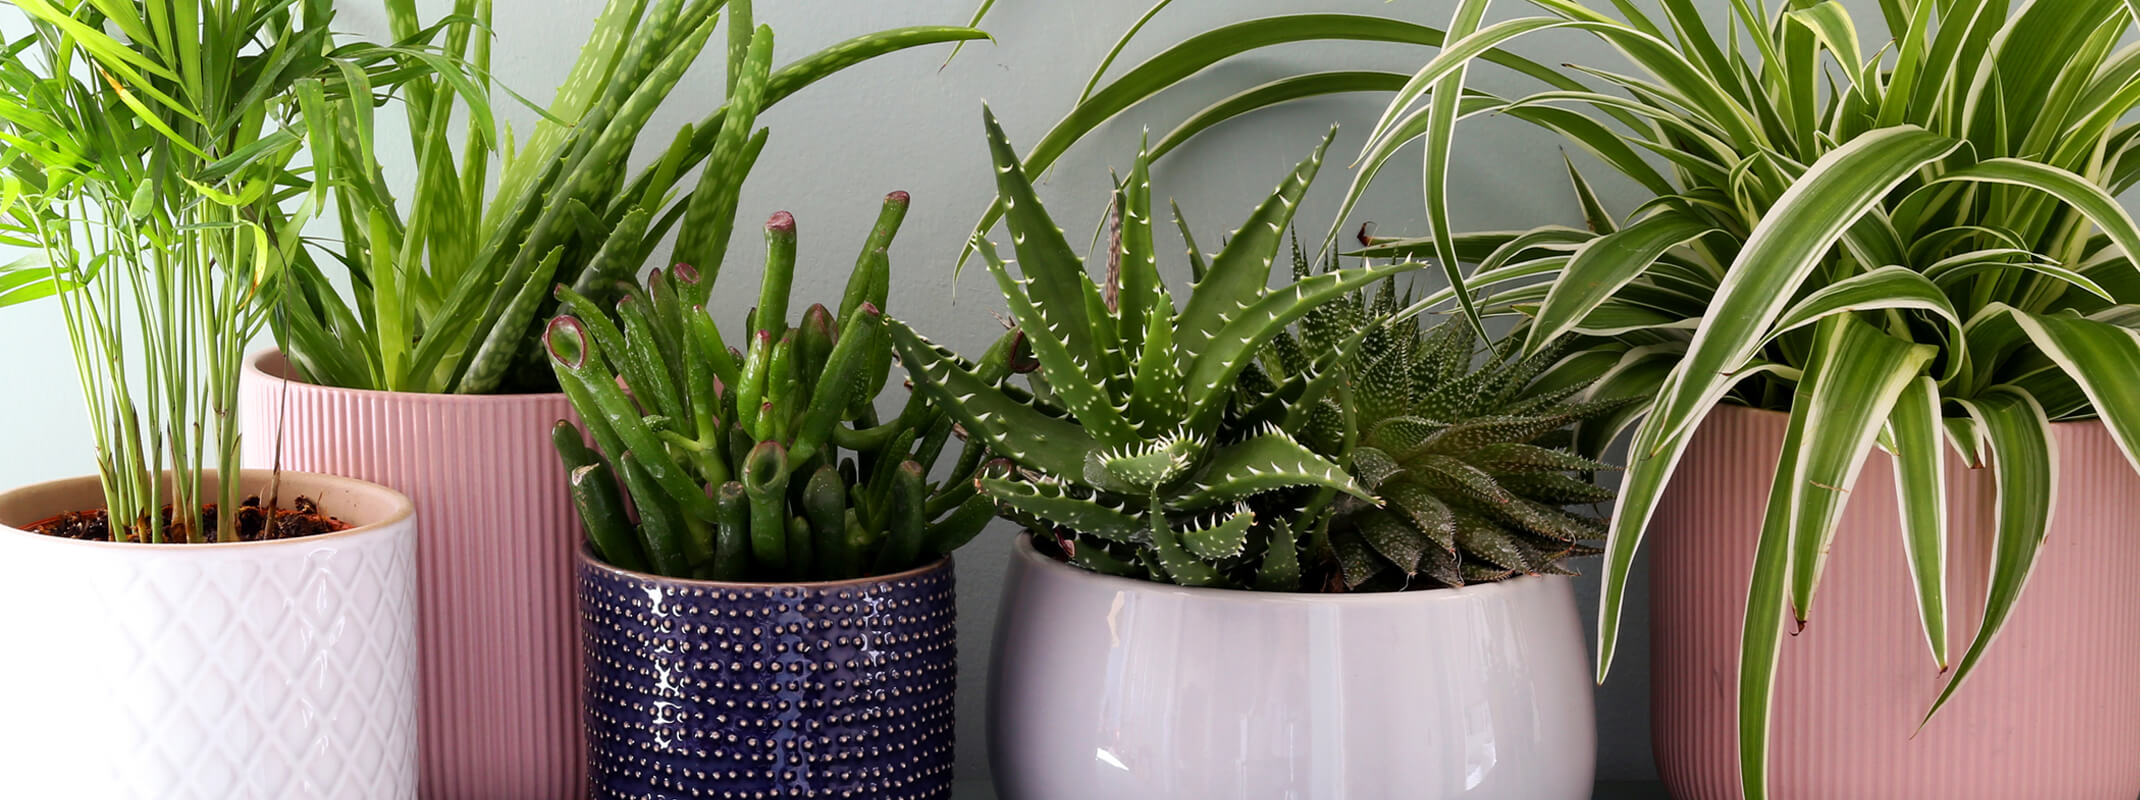 Assorted houseplants including parlor palm, aloe vera, succulent and spider plant